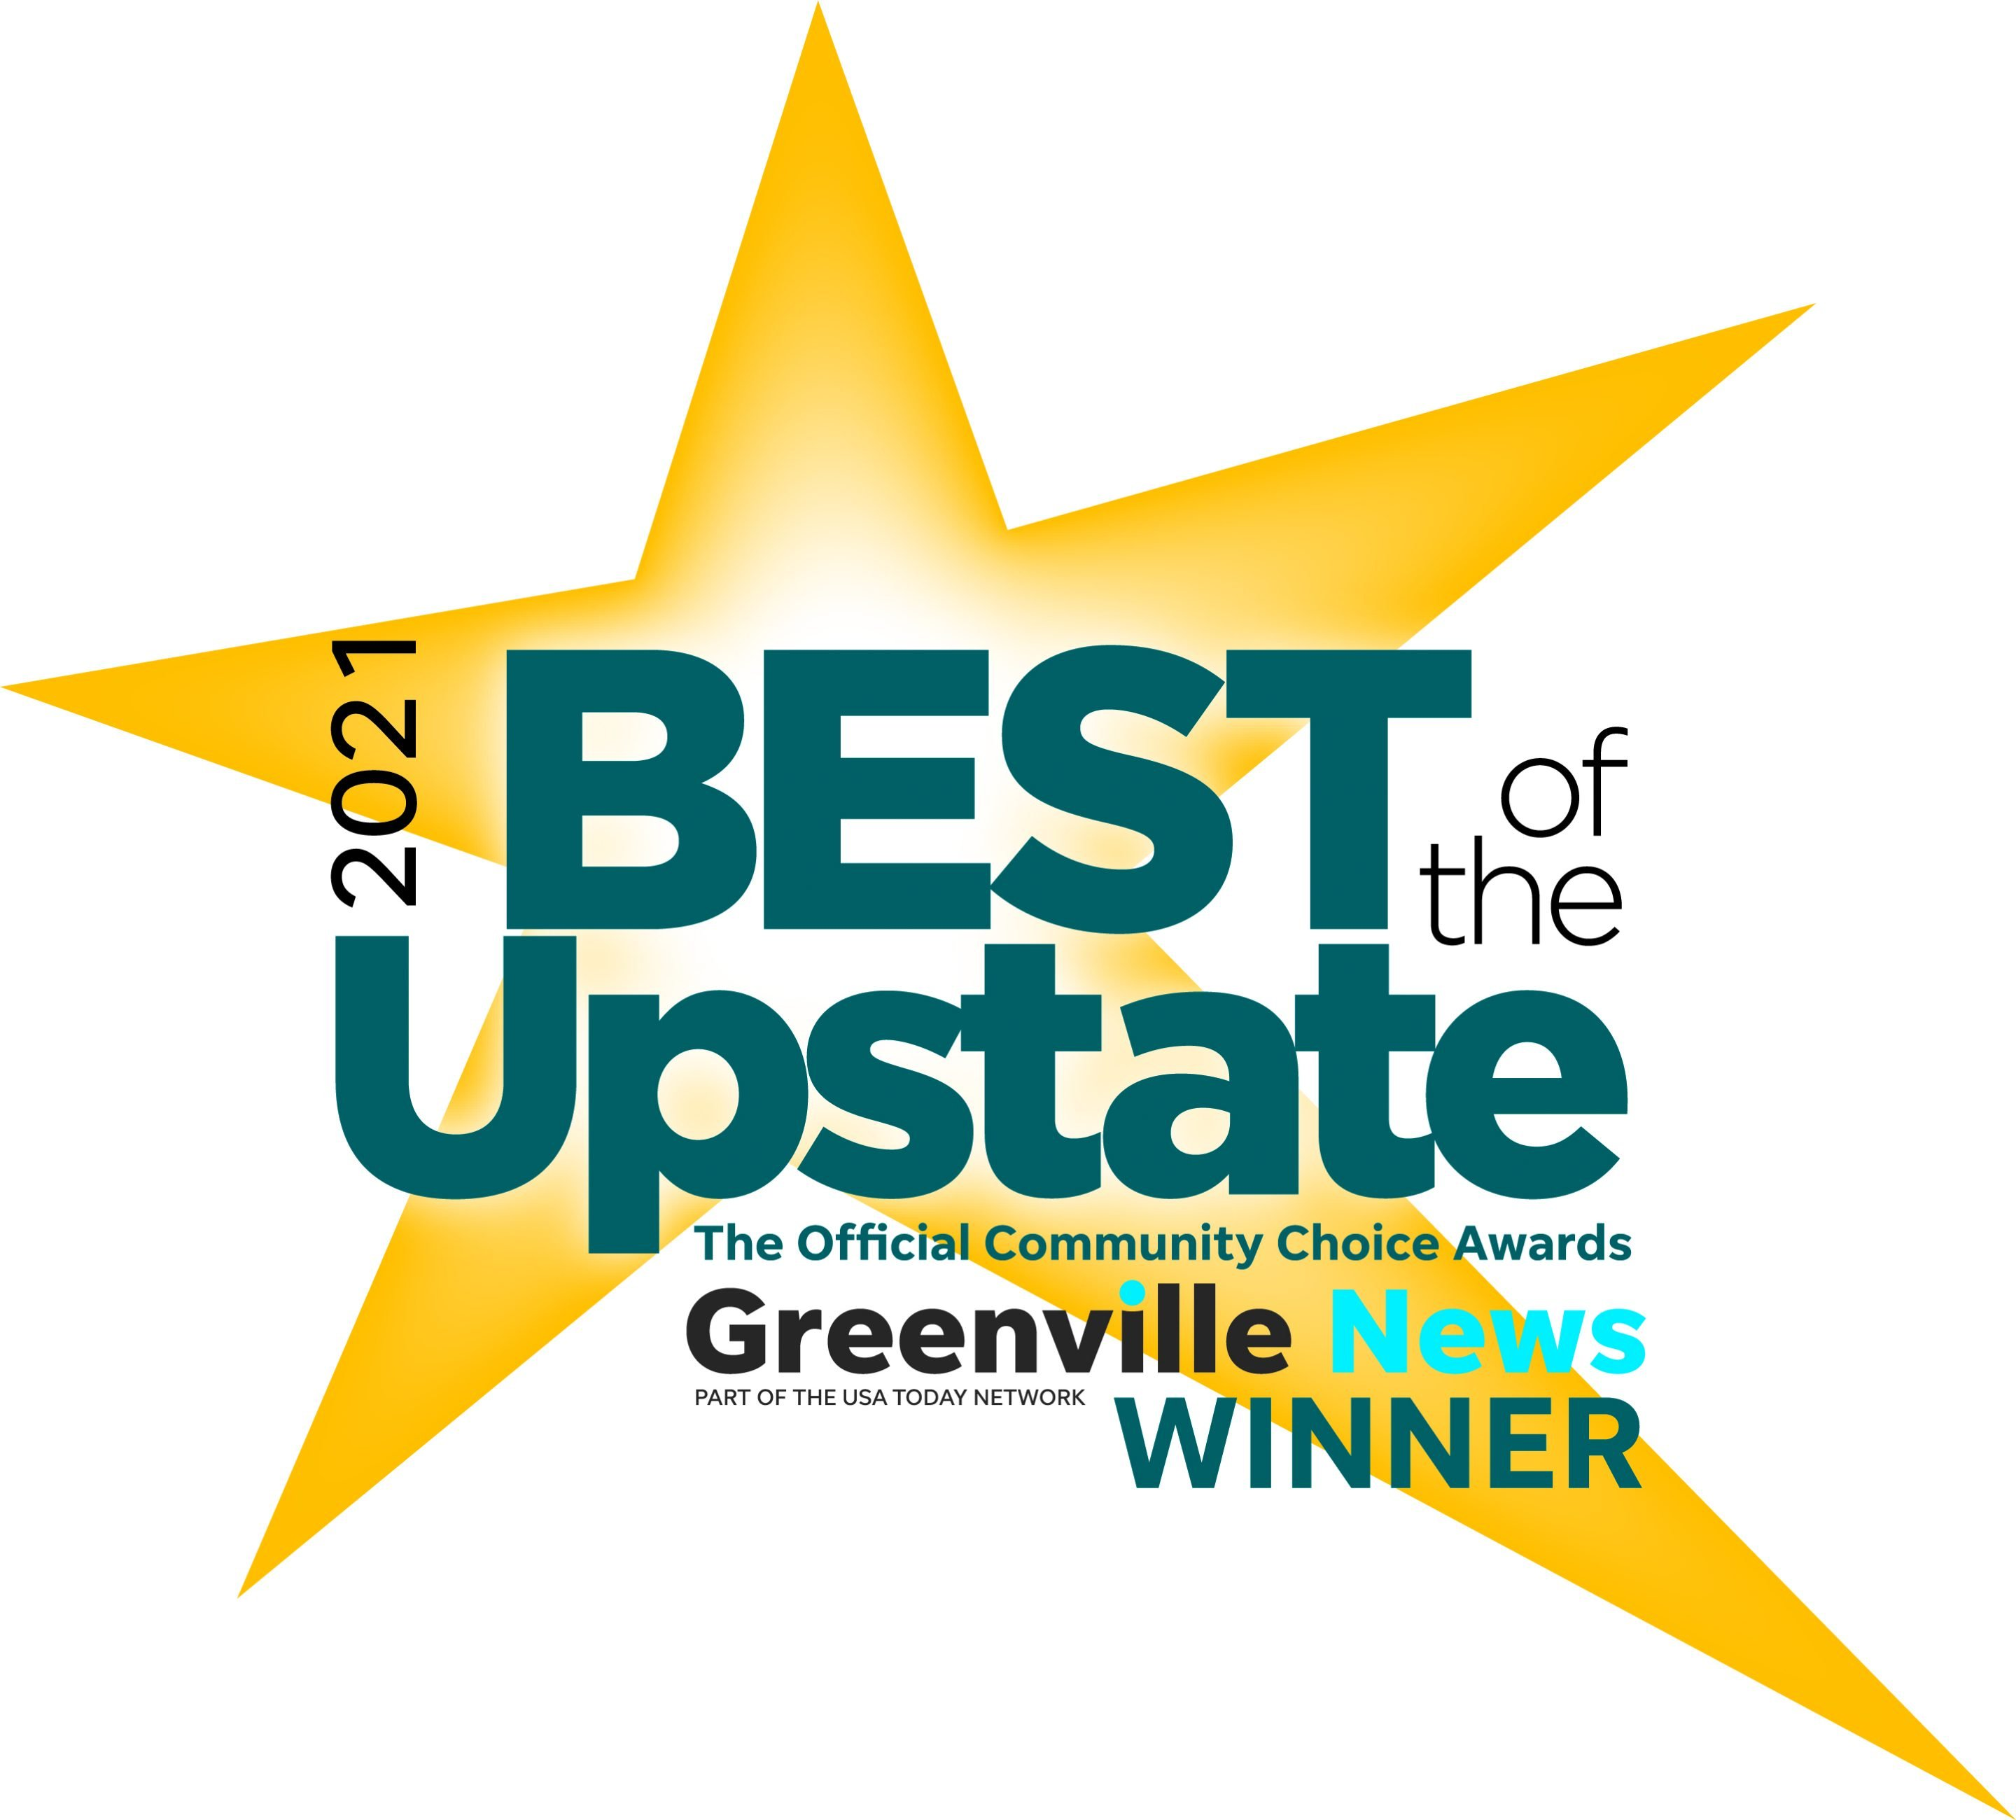 Shops at Greenridge Best of the Upstate